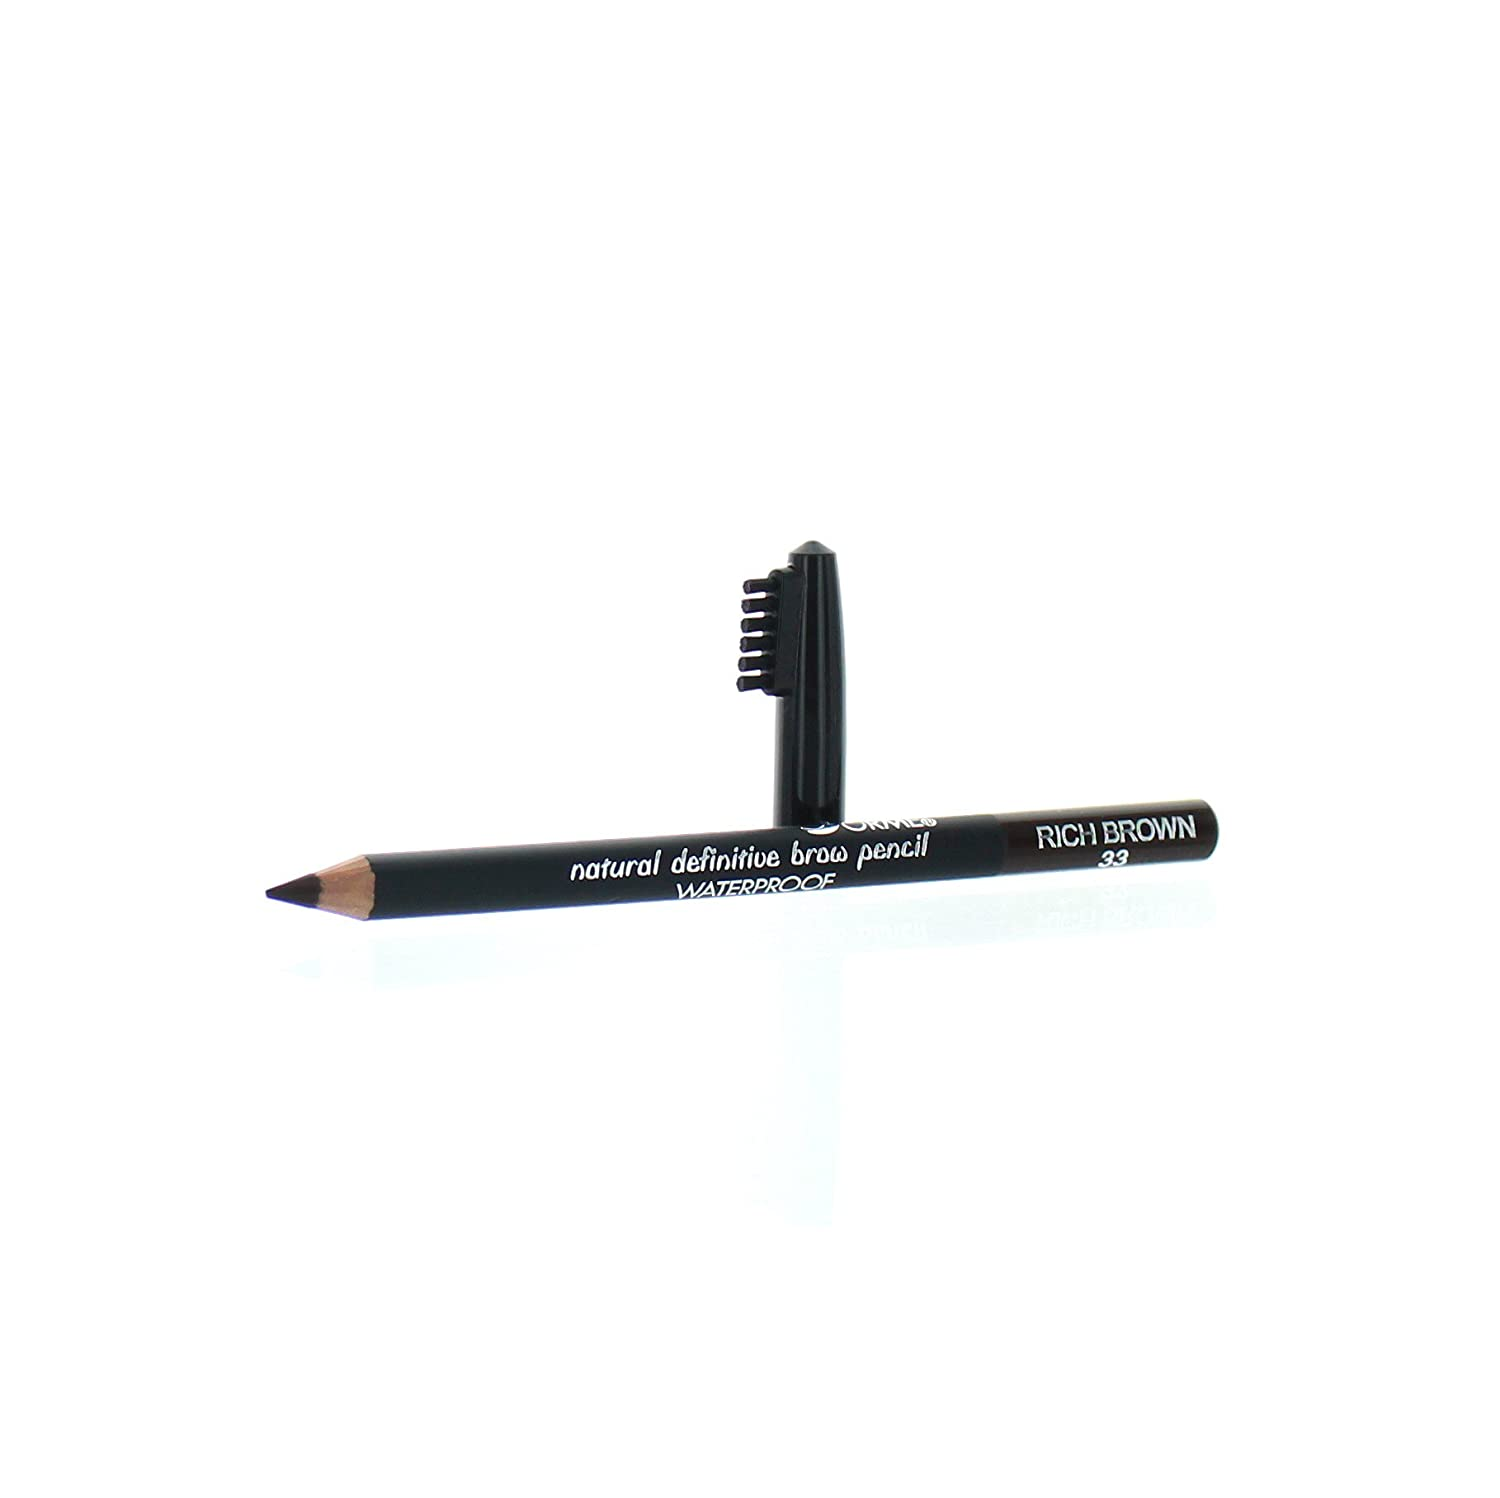 Sorme Cosmetics Waterproof Eyebrow Pencil, 0.04 Ounce